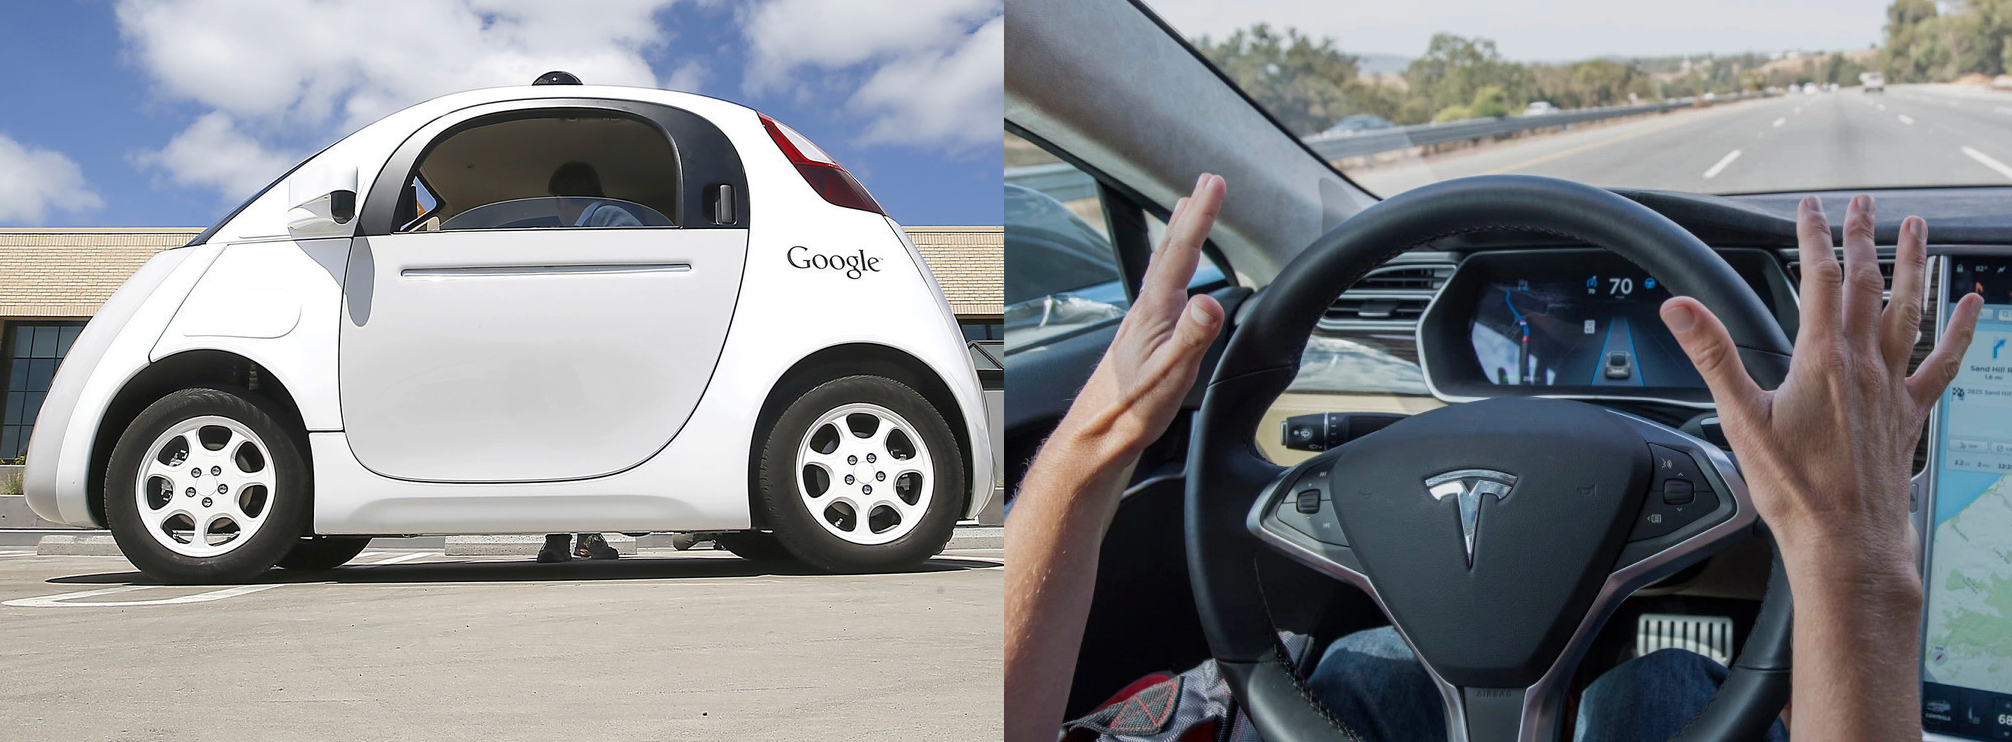 google 39 s self driving car vs tesla autopilot 1 5m miles in 6 years vs 47m miles in 6 months. Black Bedroom Furniture Sets. Home Design Ideas